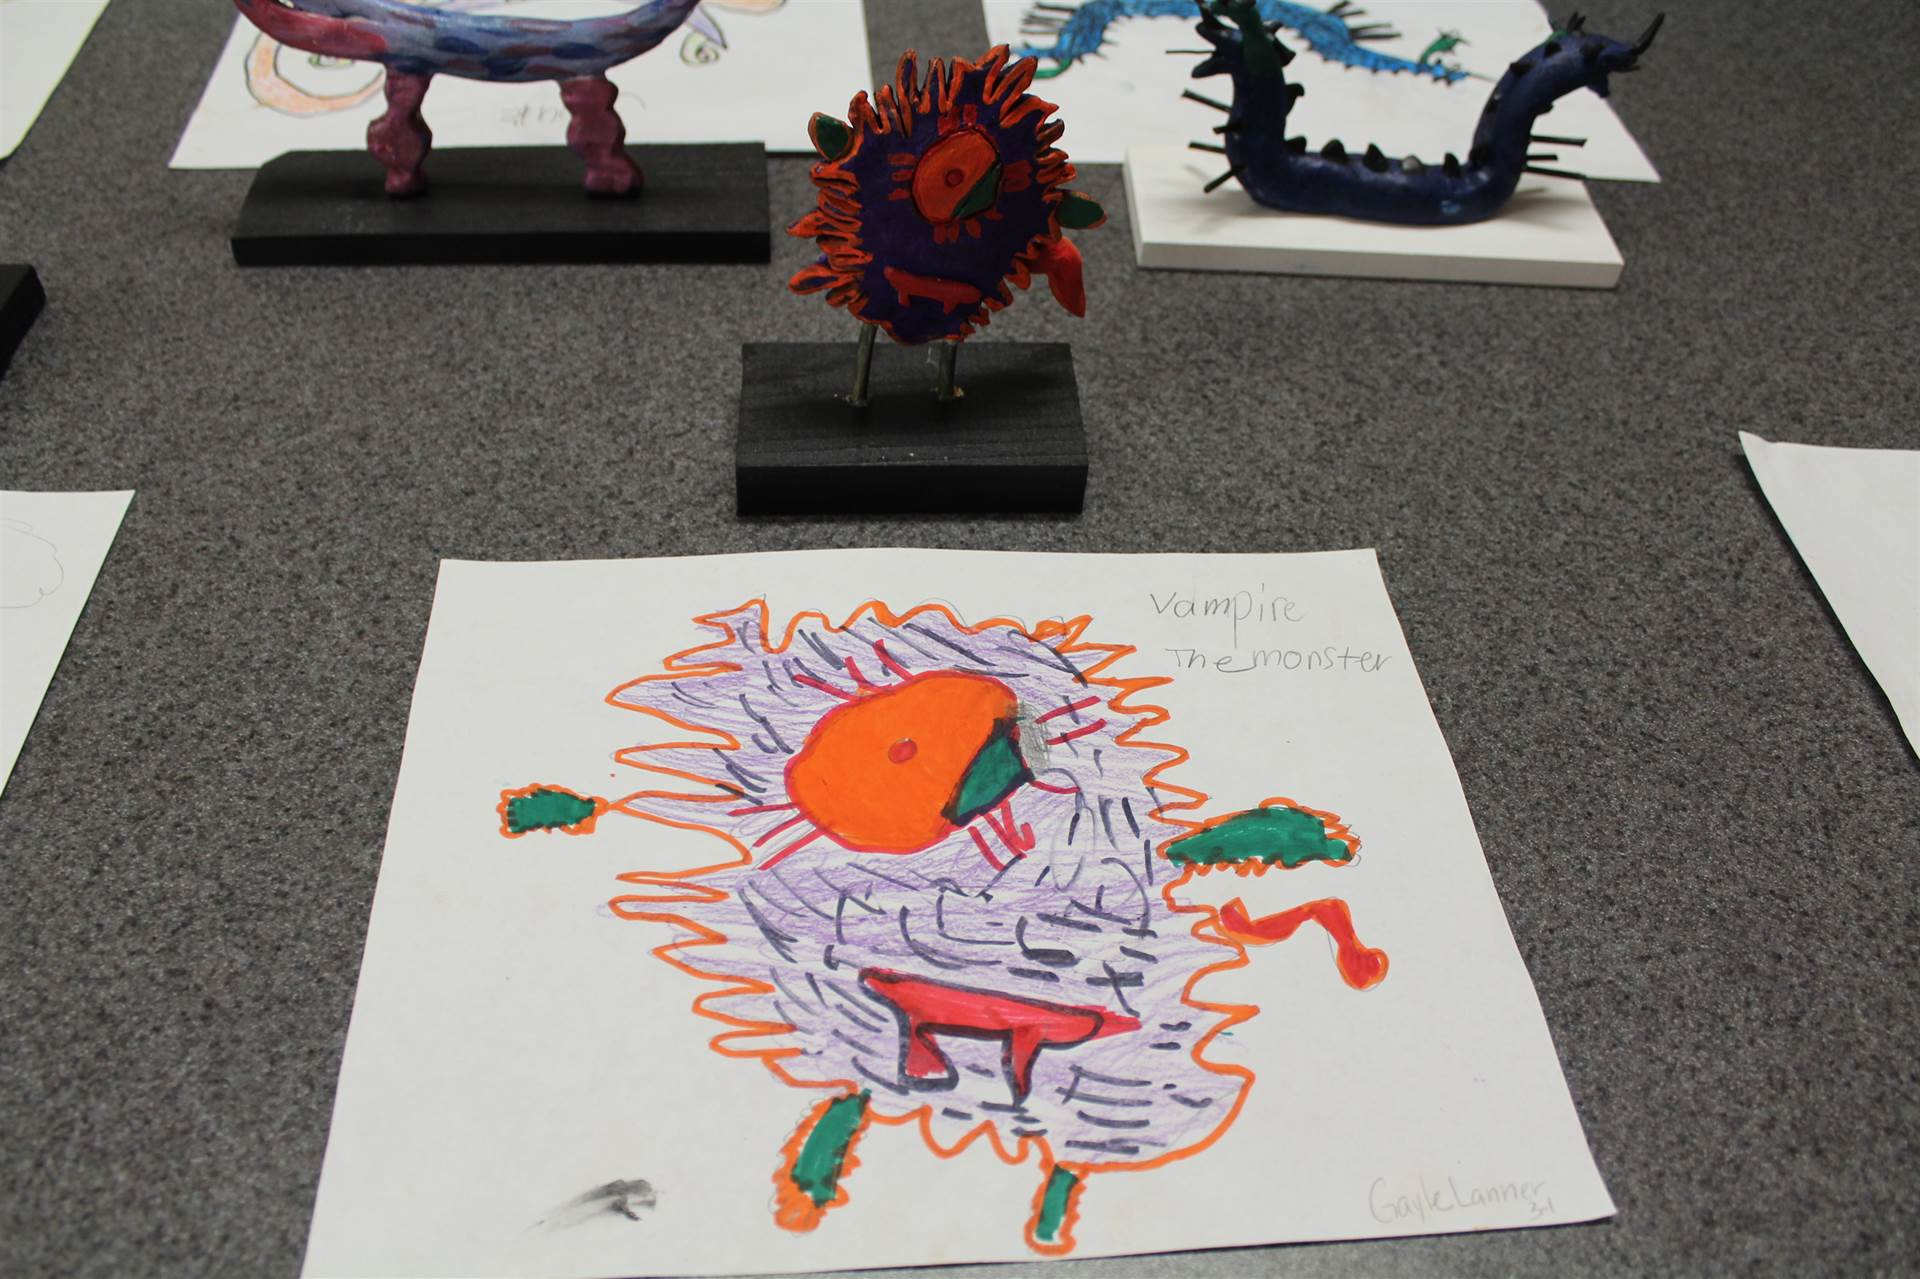 monster 3 d sculpture next to drawn picture 18